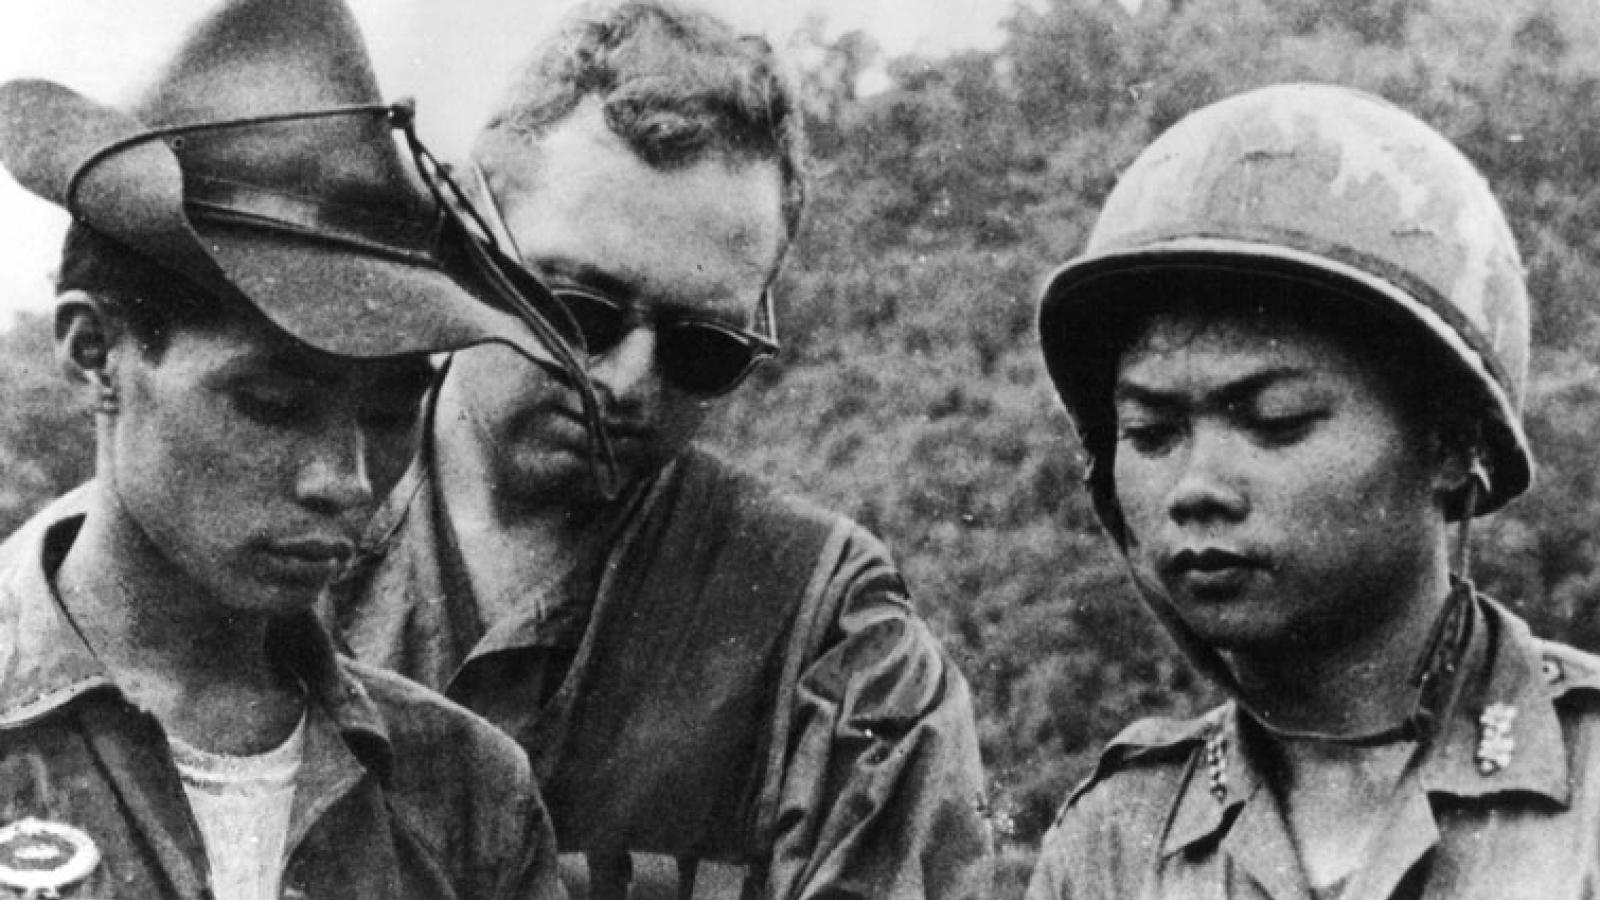 Advisor and ARVN soldiers in Vietnam